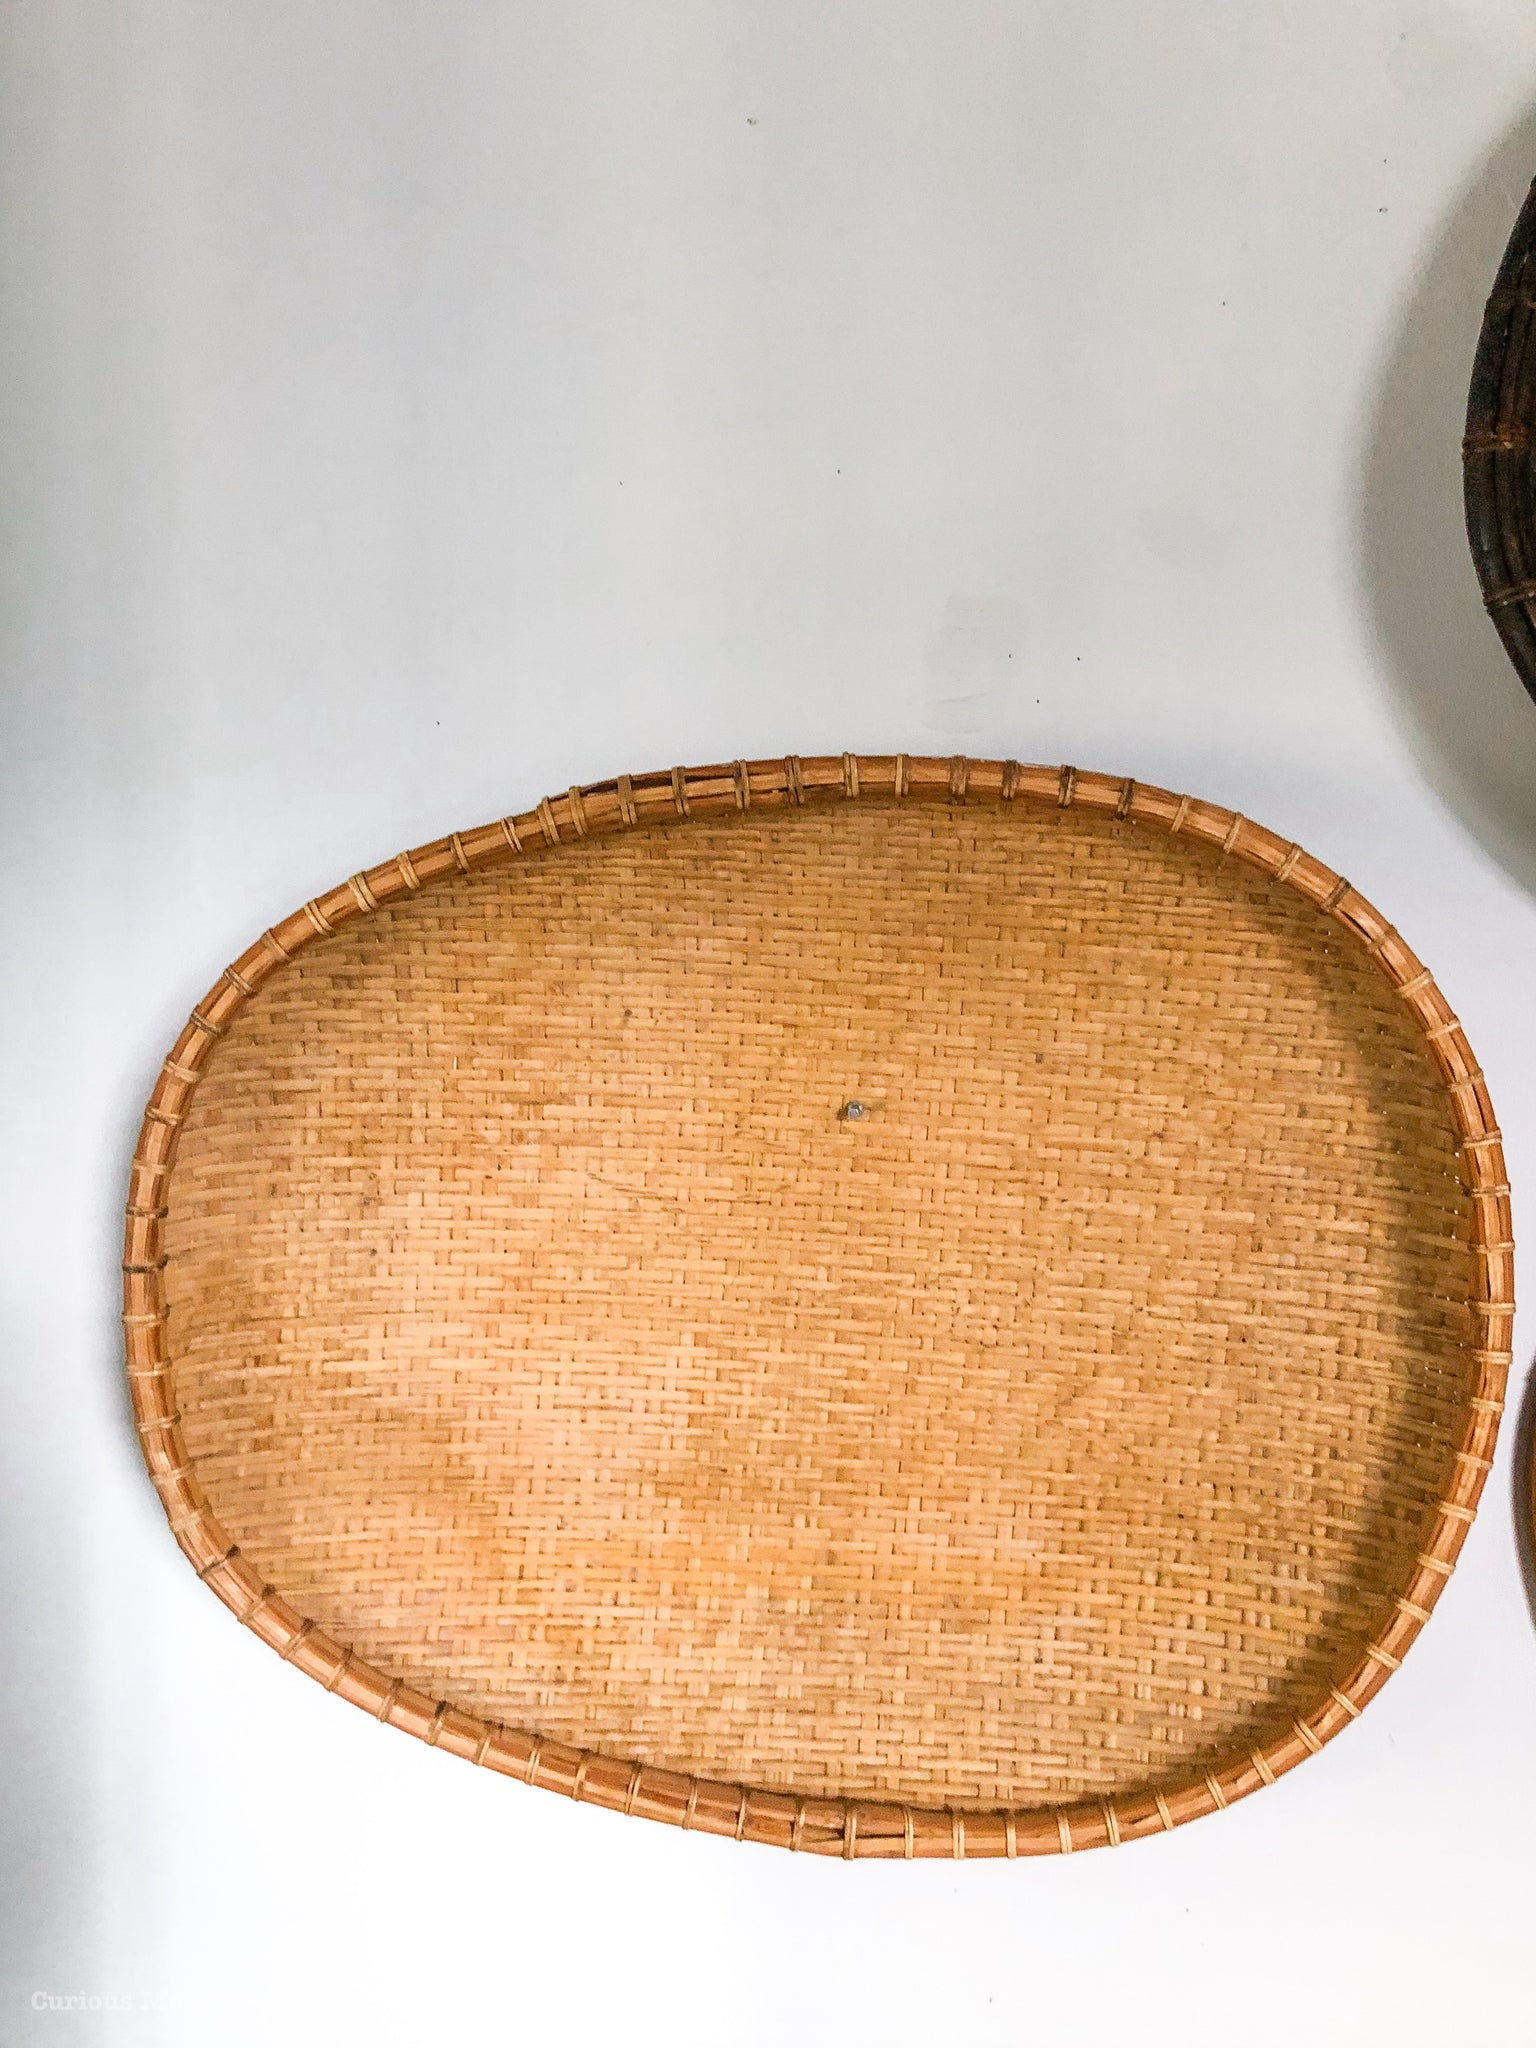 Curated Asian Basket Collection for the Wall. Vintage Winnowing Baskets and an Antique Coolie Rice Paddy Hat from the 50's.